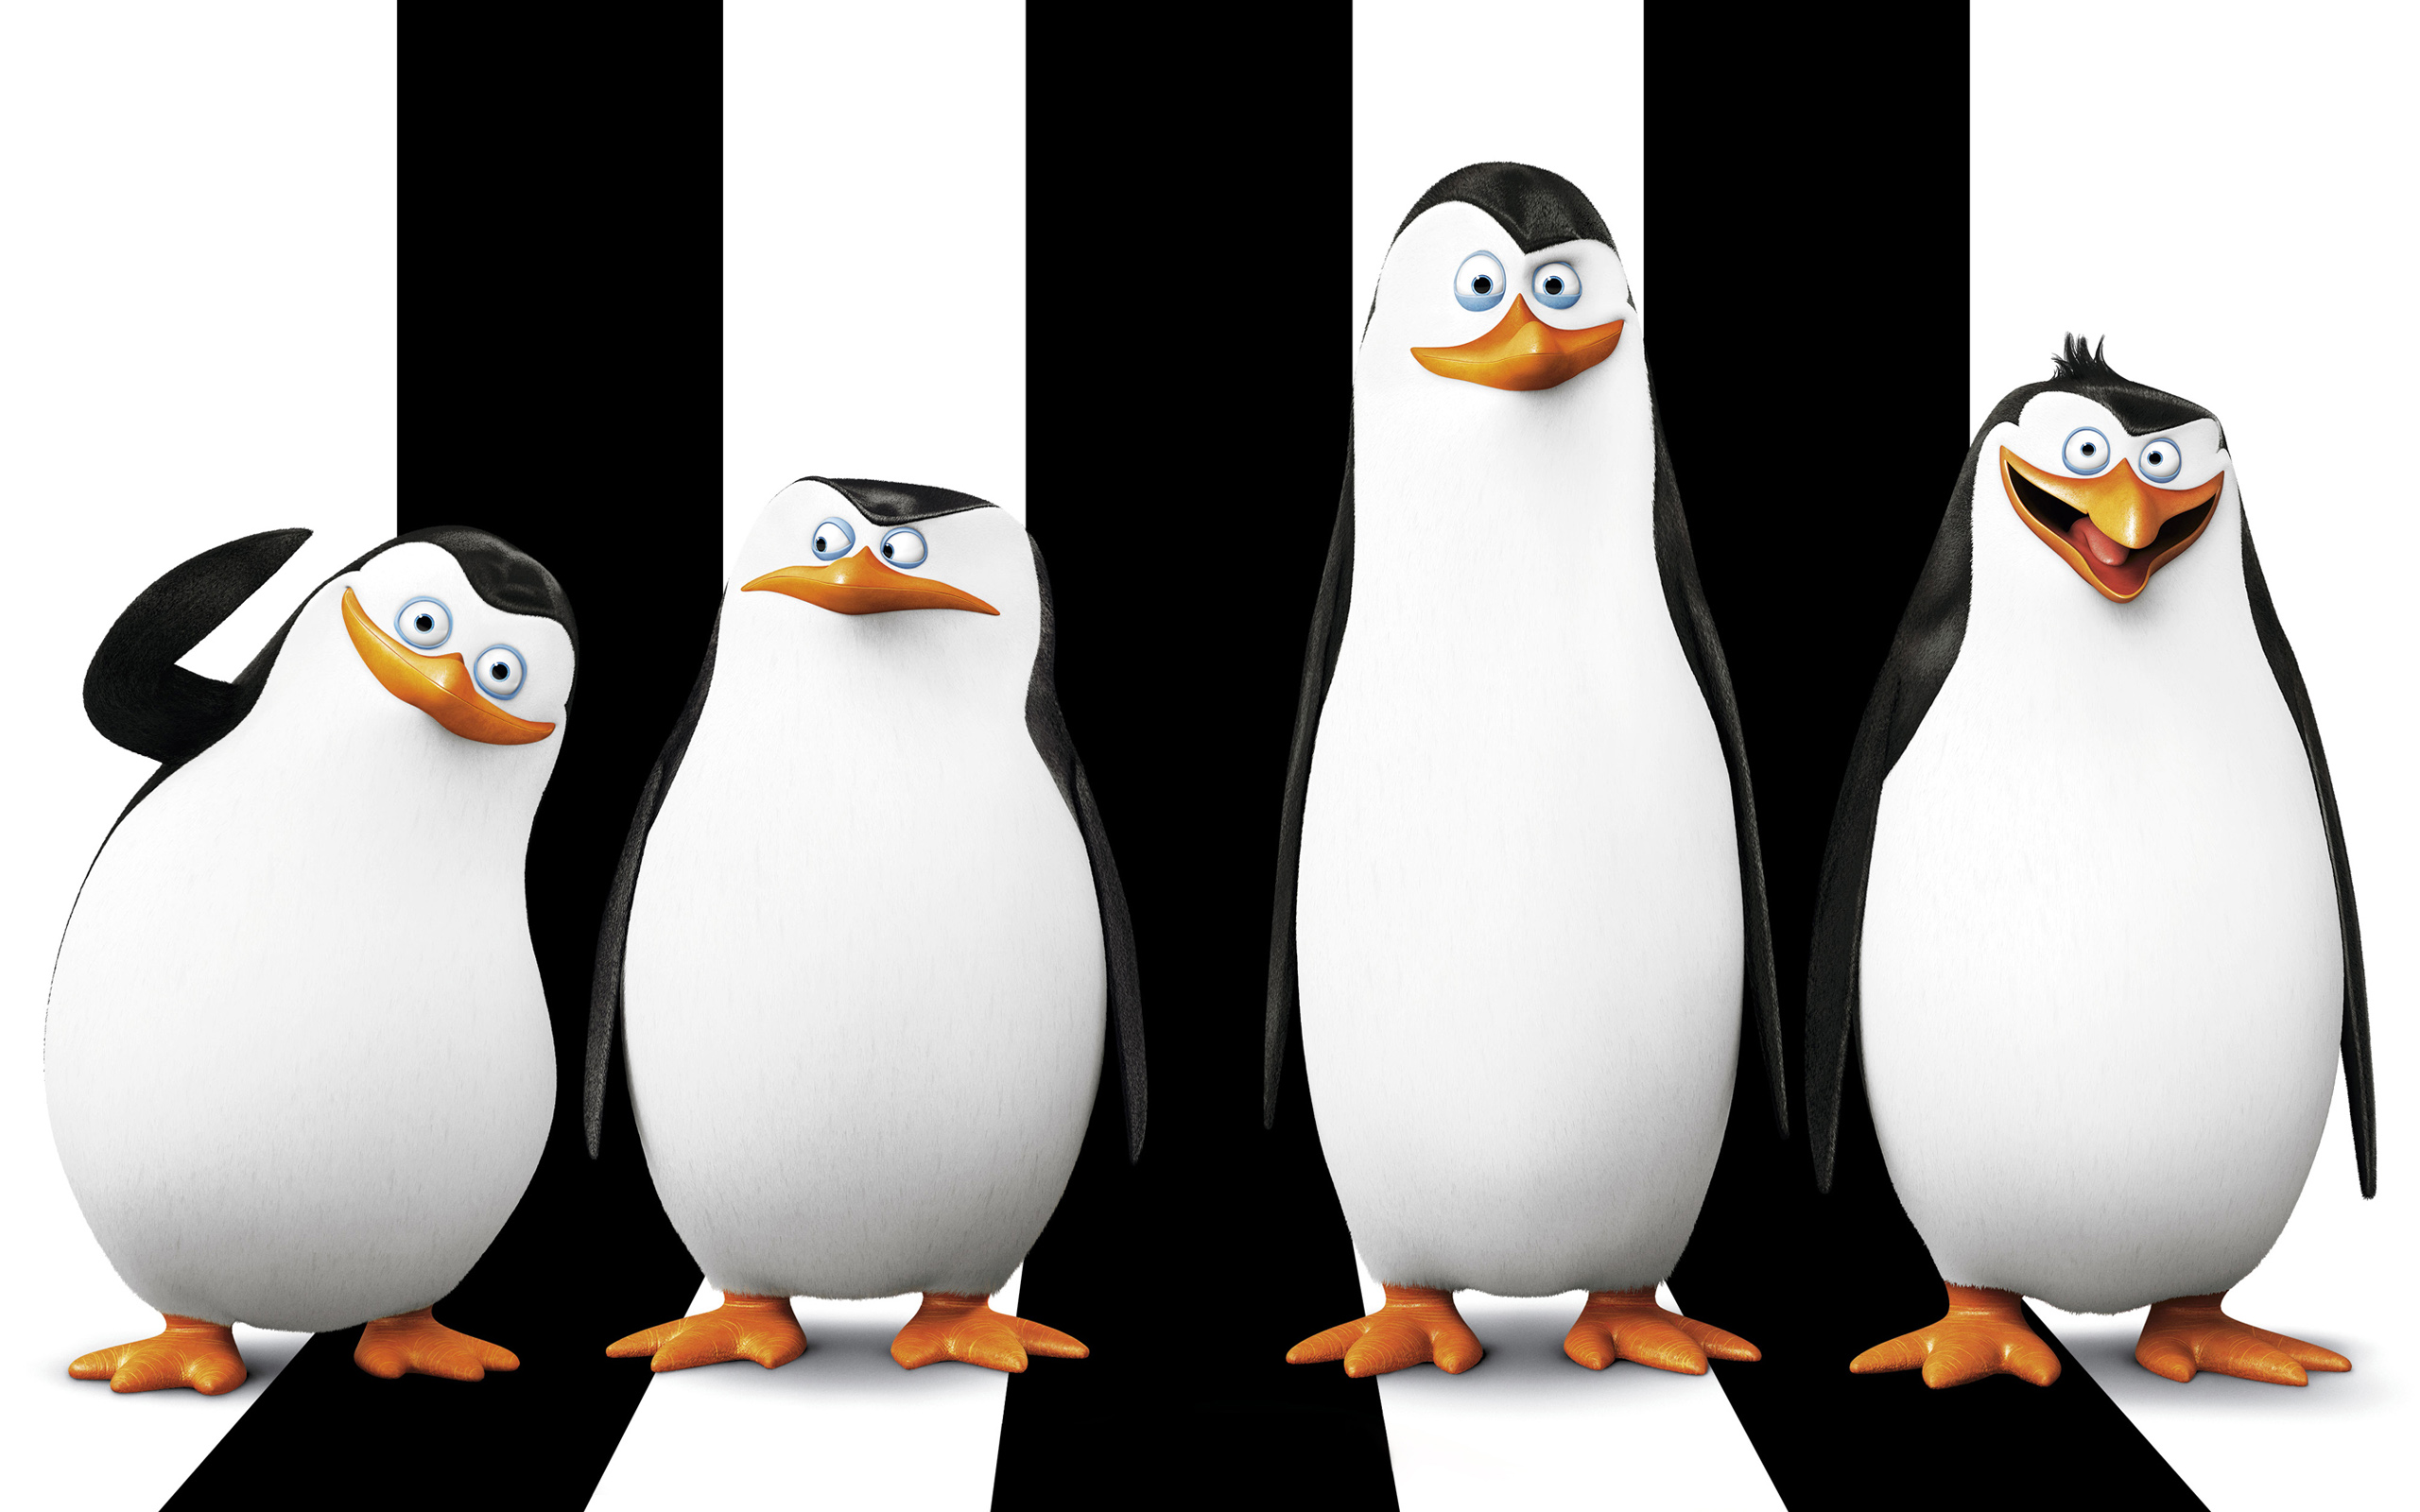 HD Wallpapers Penguins of Madagascar